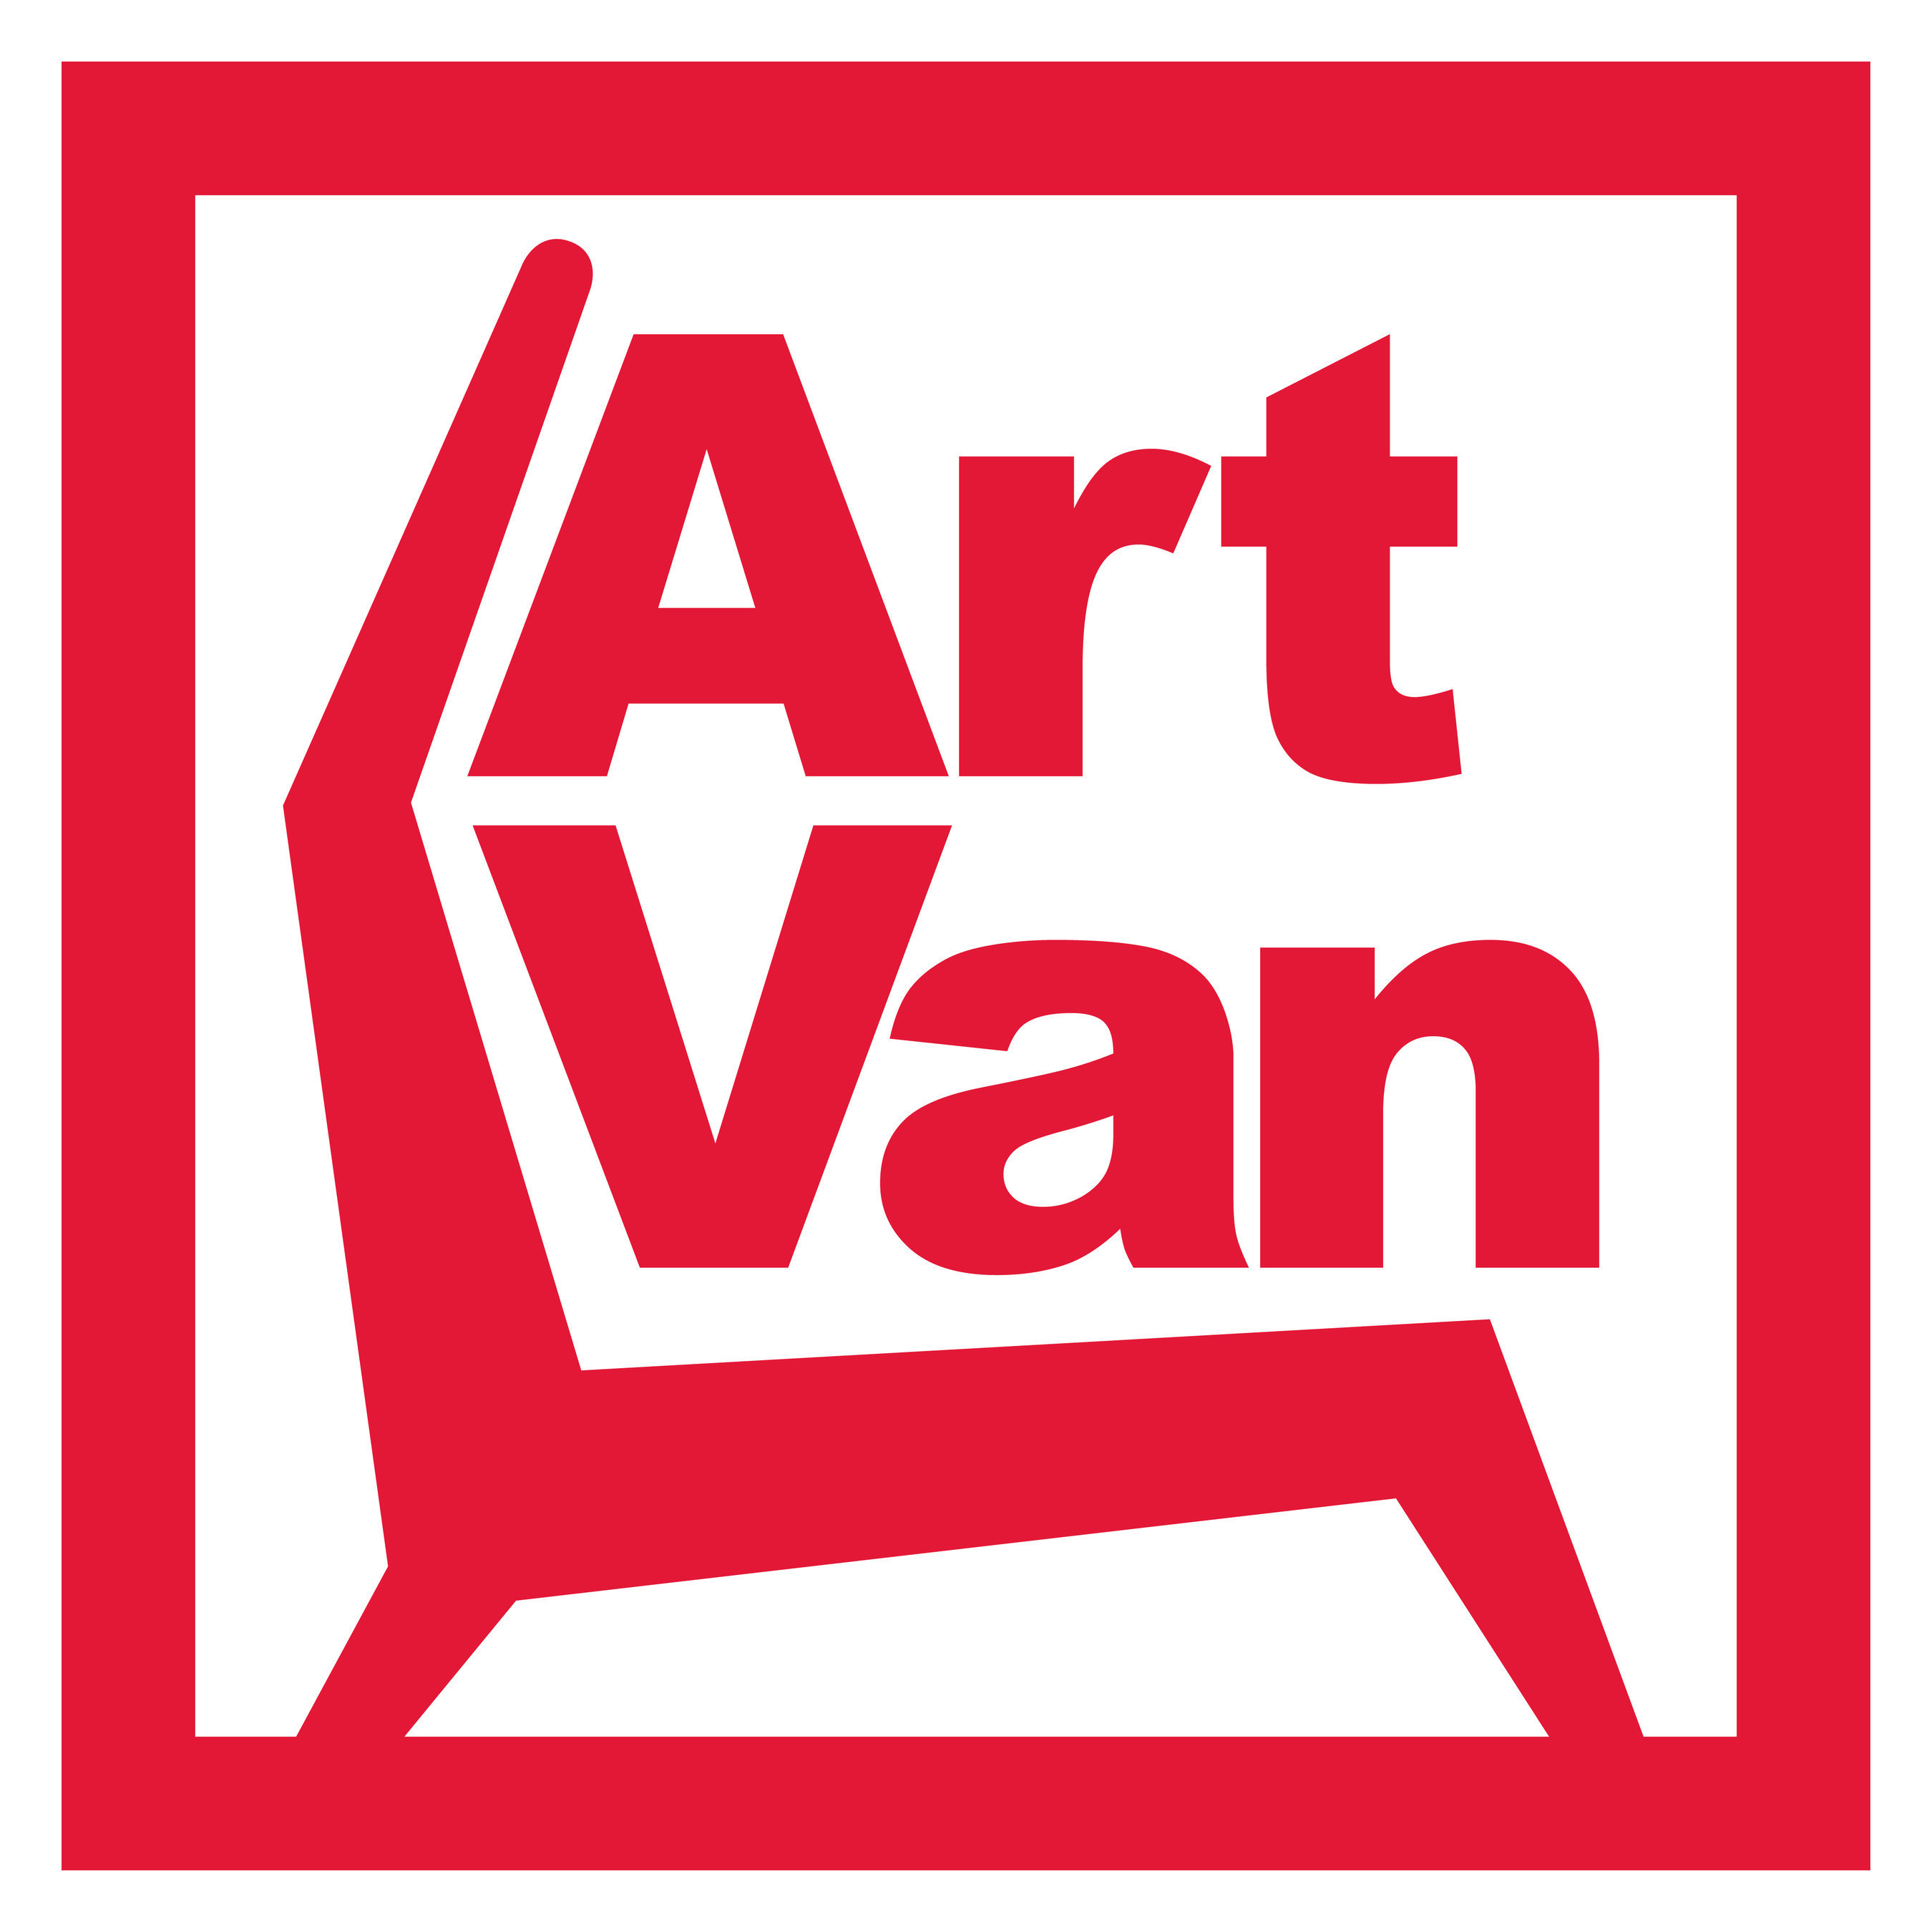 Art Van Furniture Opens New 80000 Square Foot Showroom In Schaumburg Illinois With A Community Celebration